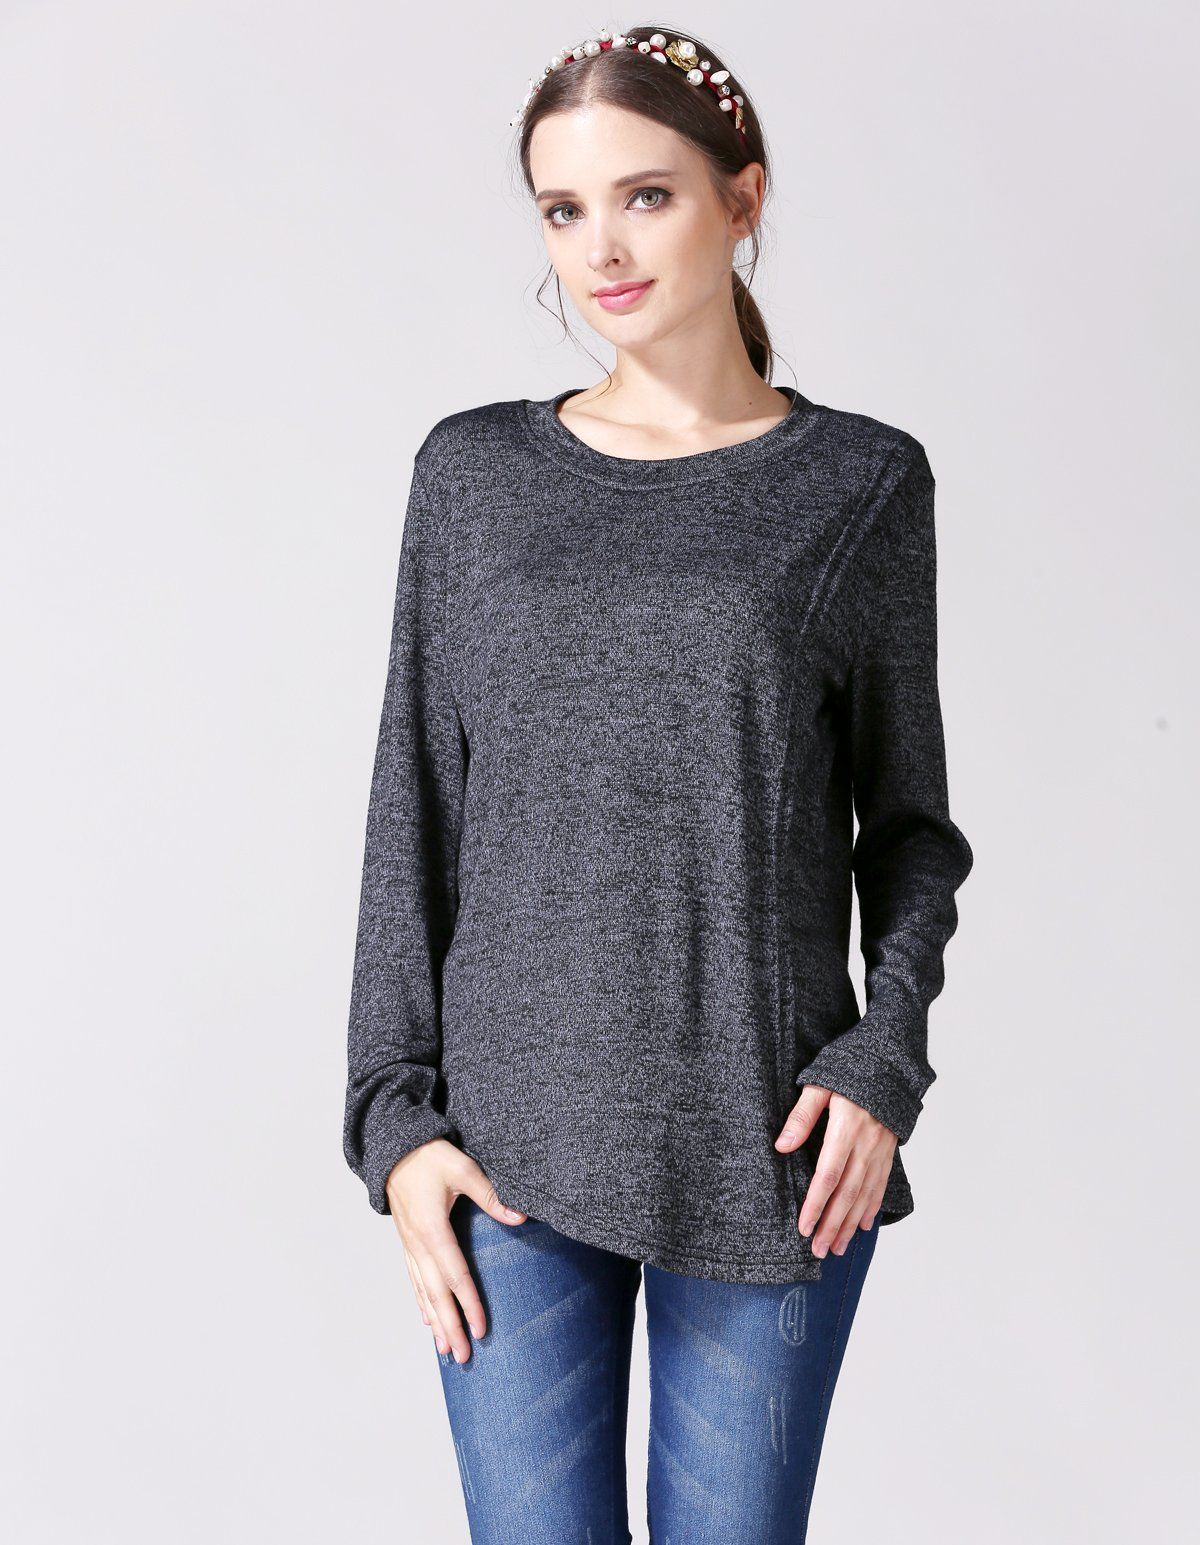 cfee45a7c1192 nursing tops - Emotion Moms Long Sleeve Maternity Clothes Nursing TShirts Breastfeeding  Tops for Pregnant Women Large Dark Grey * Extra information can be ...